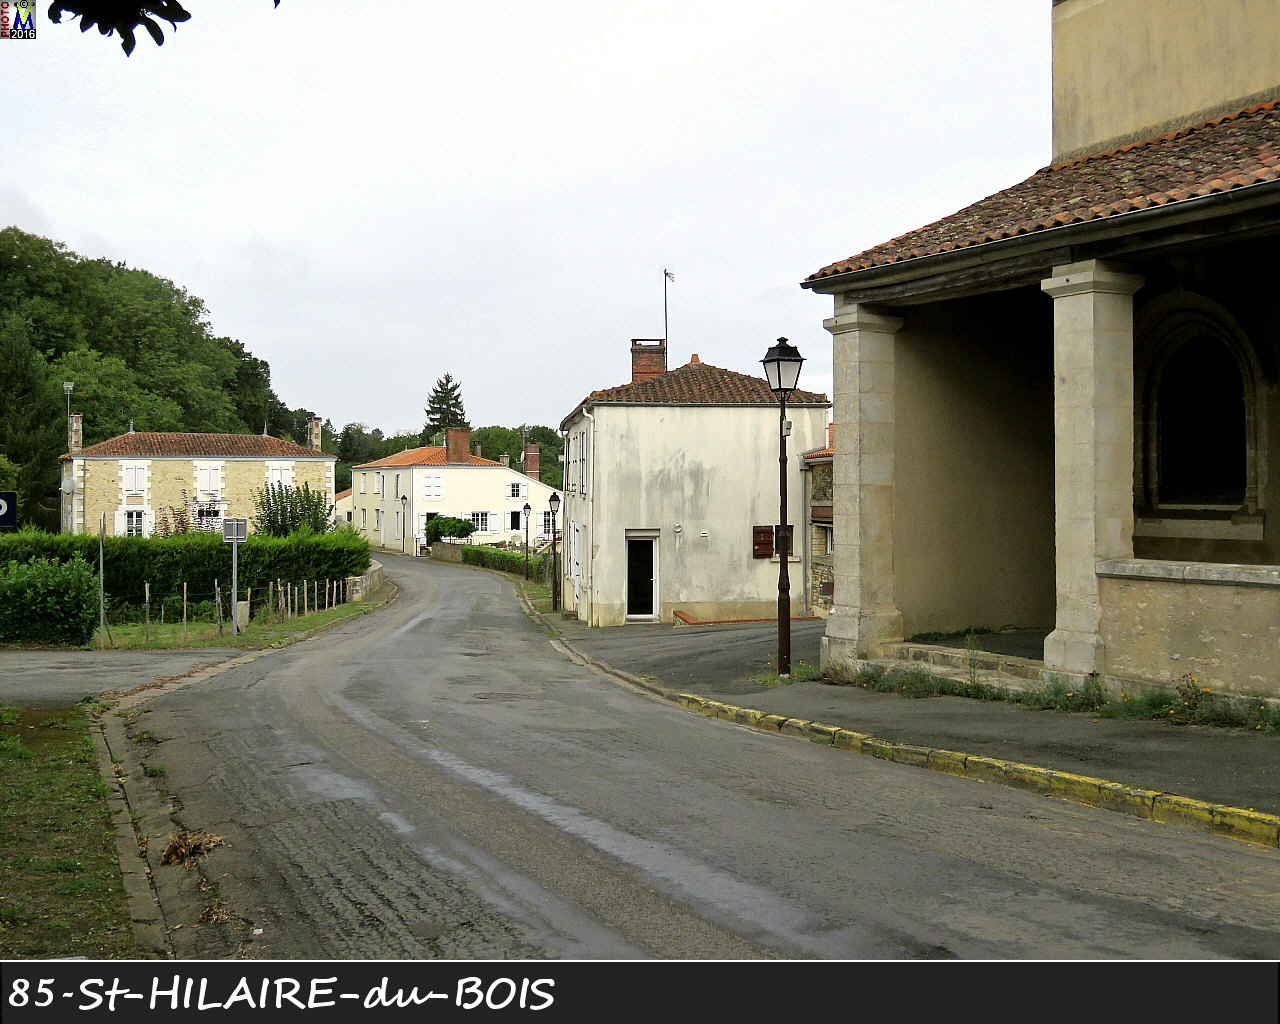 85CAILLERE-StHILAIRE-HILAIRE_100.jpg